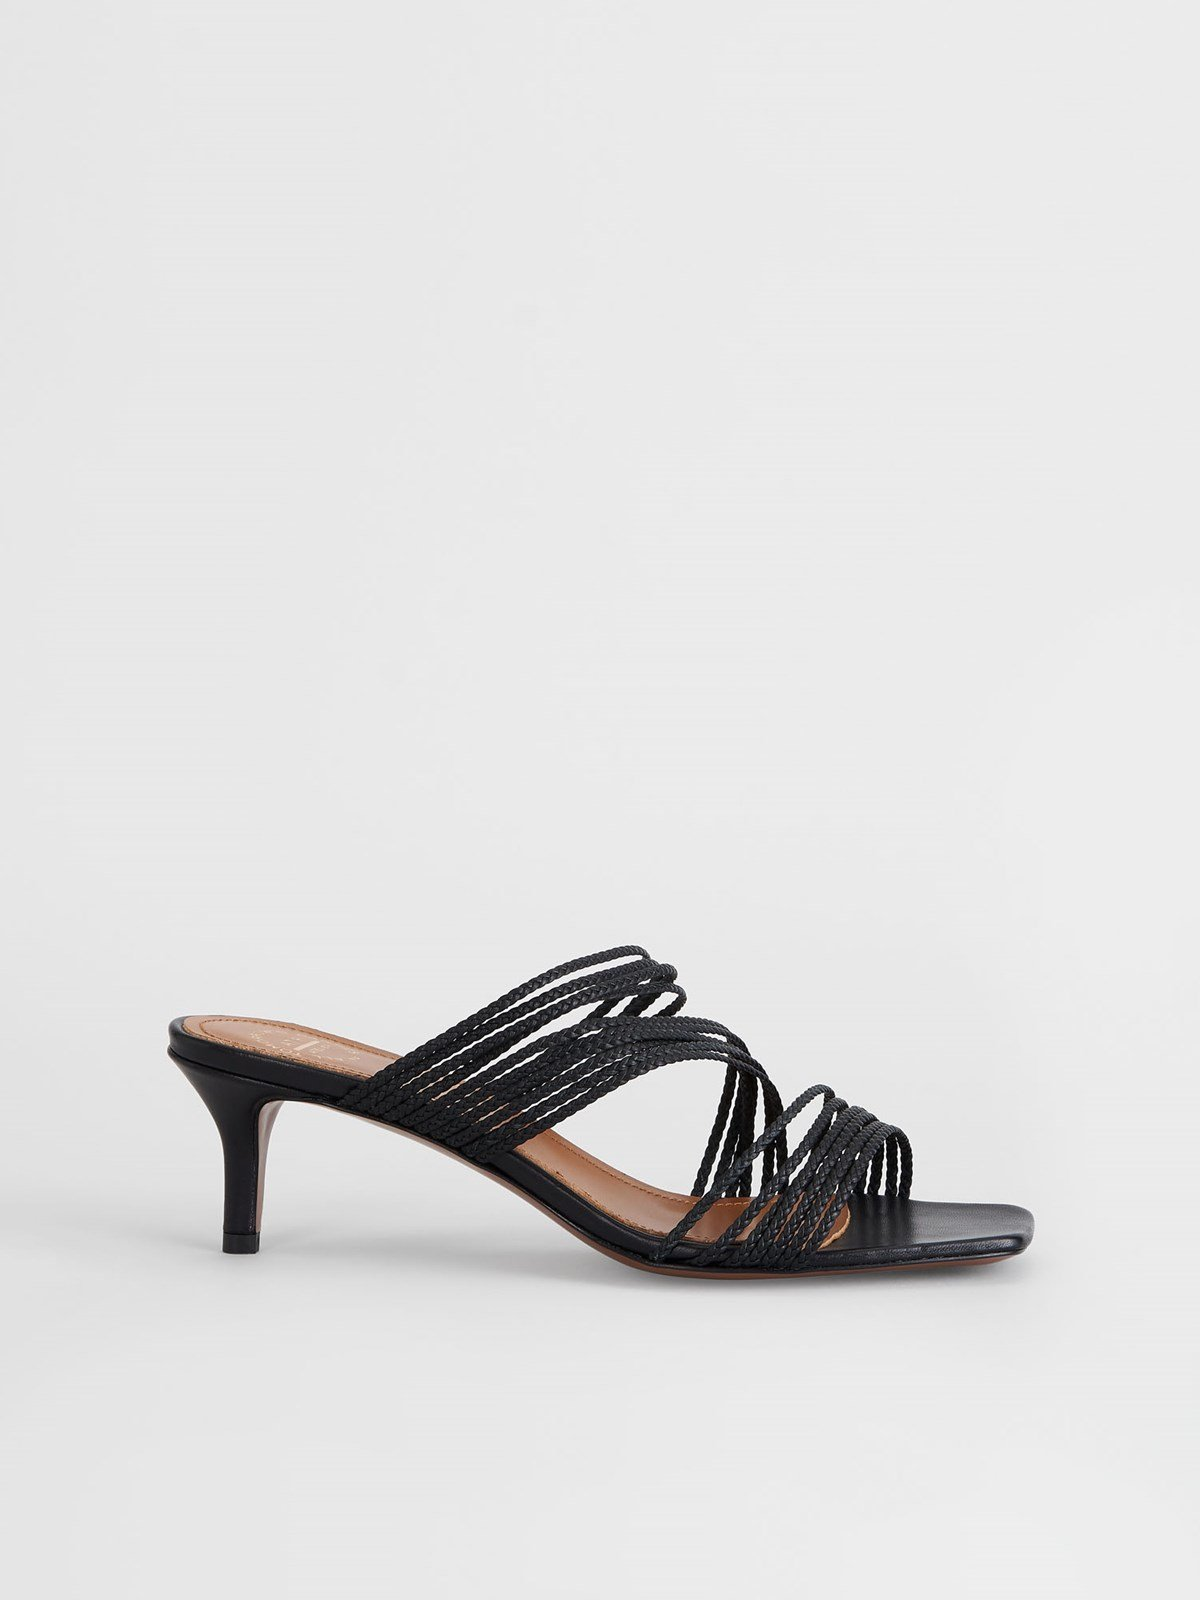 Avetrana Black Heeled sandals